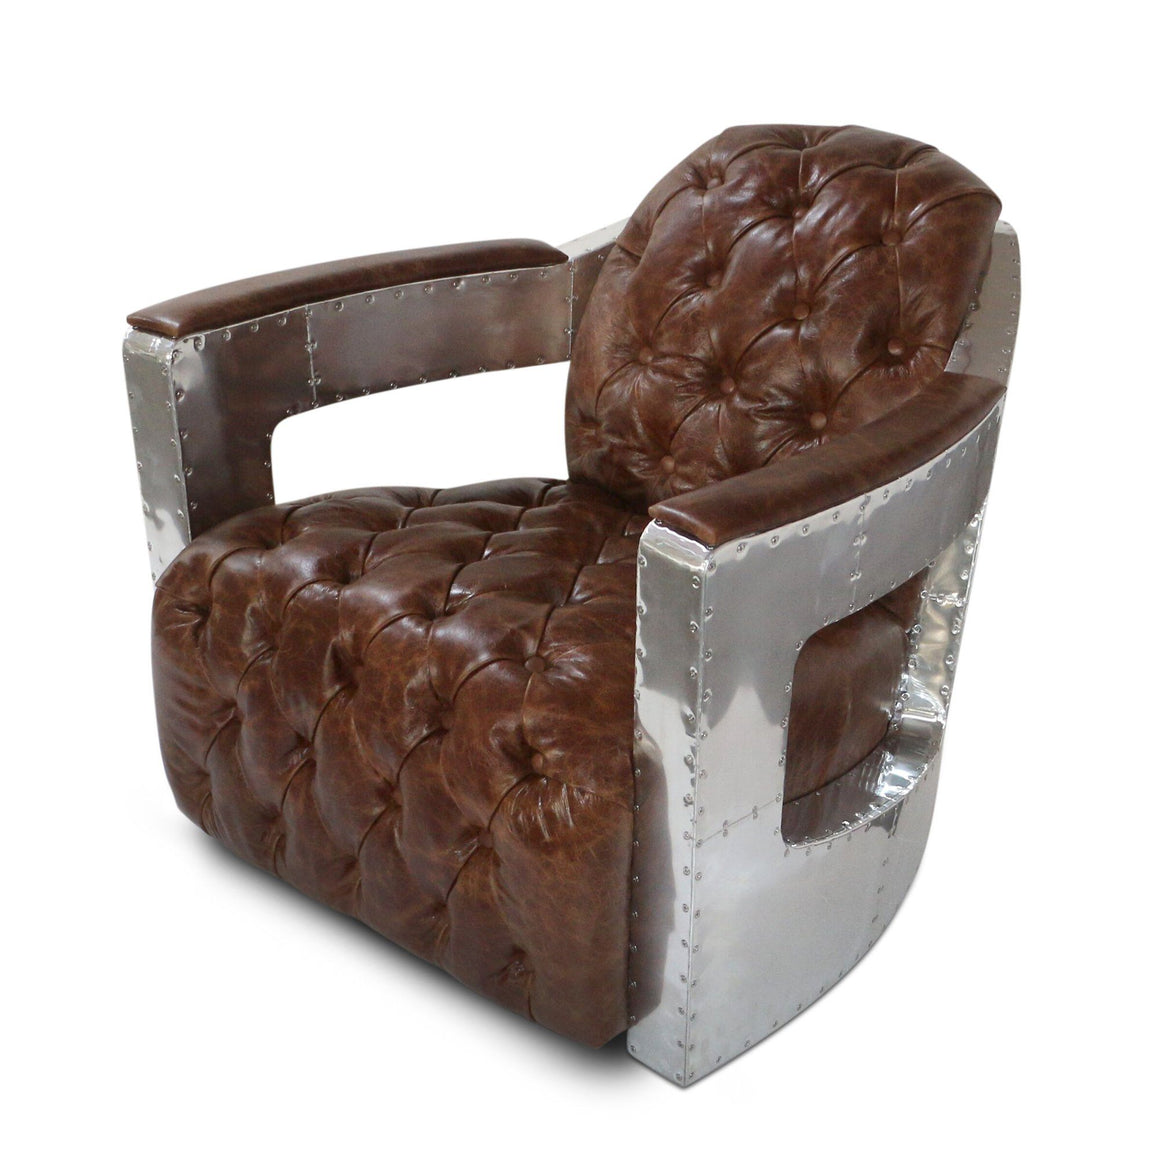 Aviator Spitfire Club Chair - Tufted Brown Genuine Leather - Aluminum - Rustic Deco Incorporated